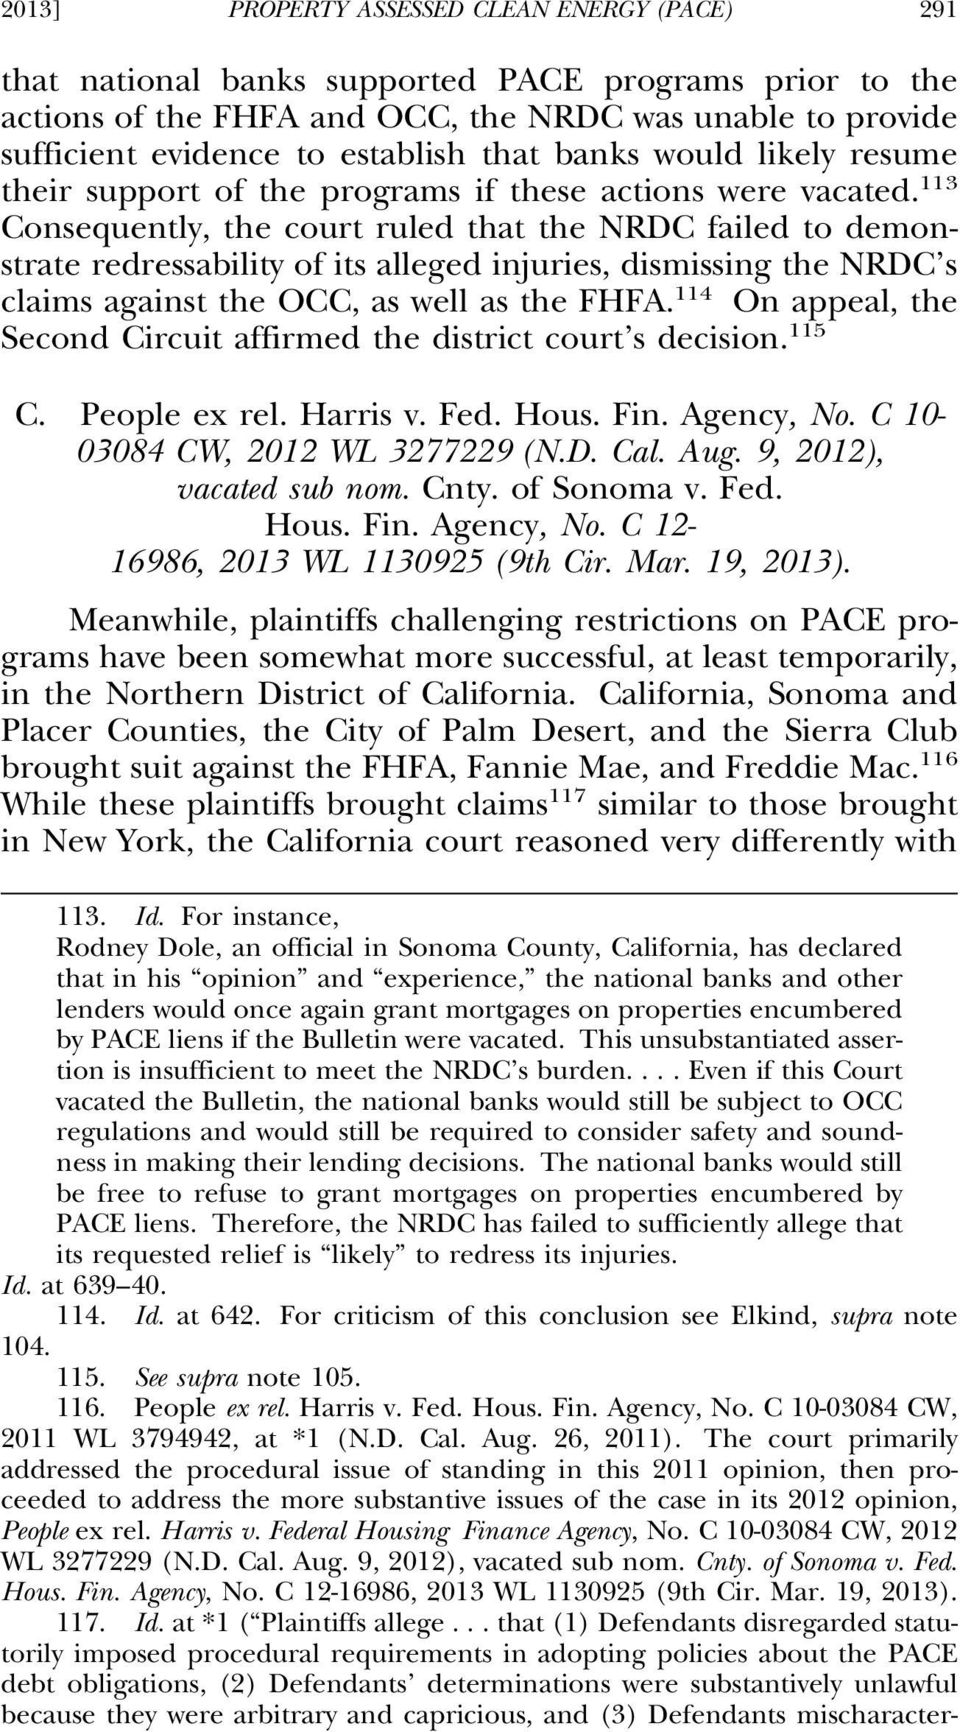 113 Consequently, the court ruled that the NRDC failed to demonstrate redressability of its alleged injuries, dismissing the NRDC s claims against the OCC, as well as the FHFA.